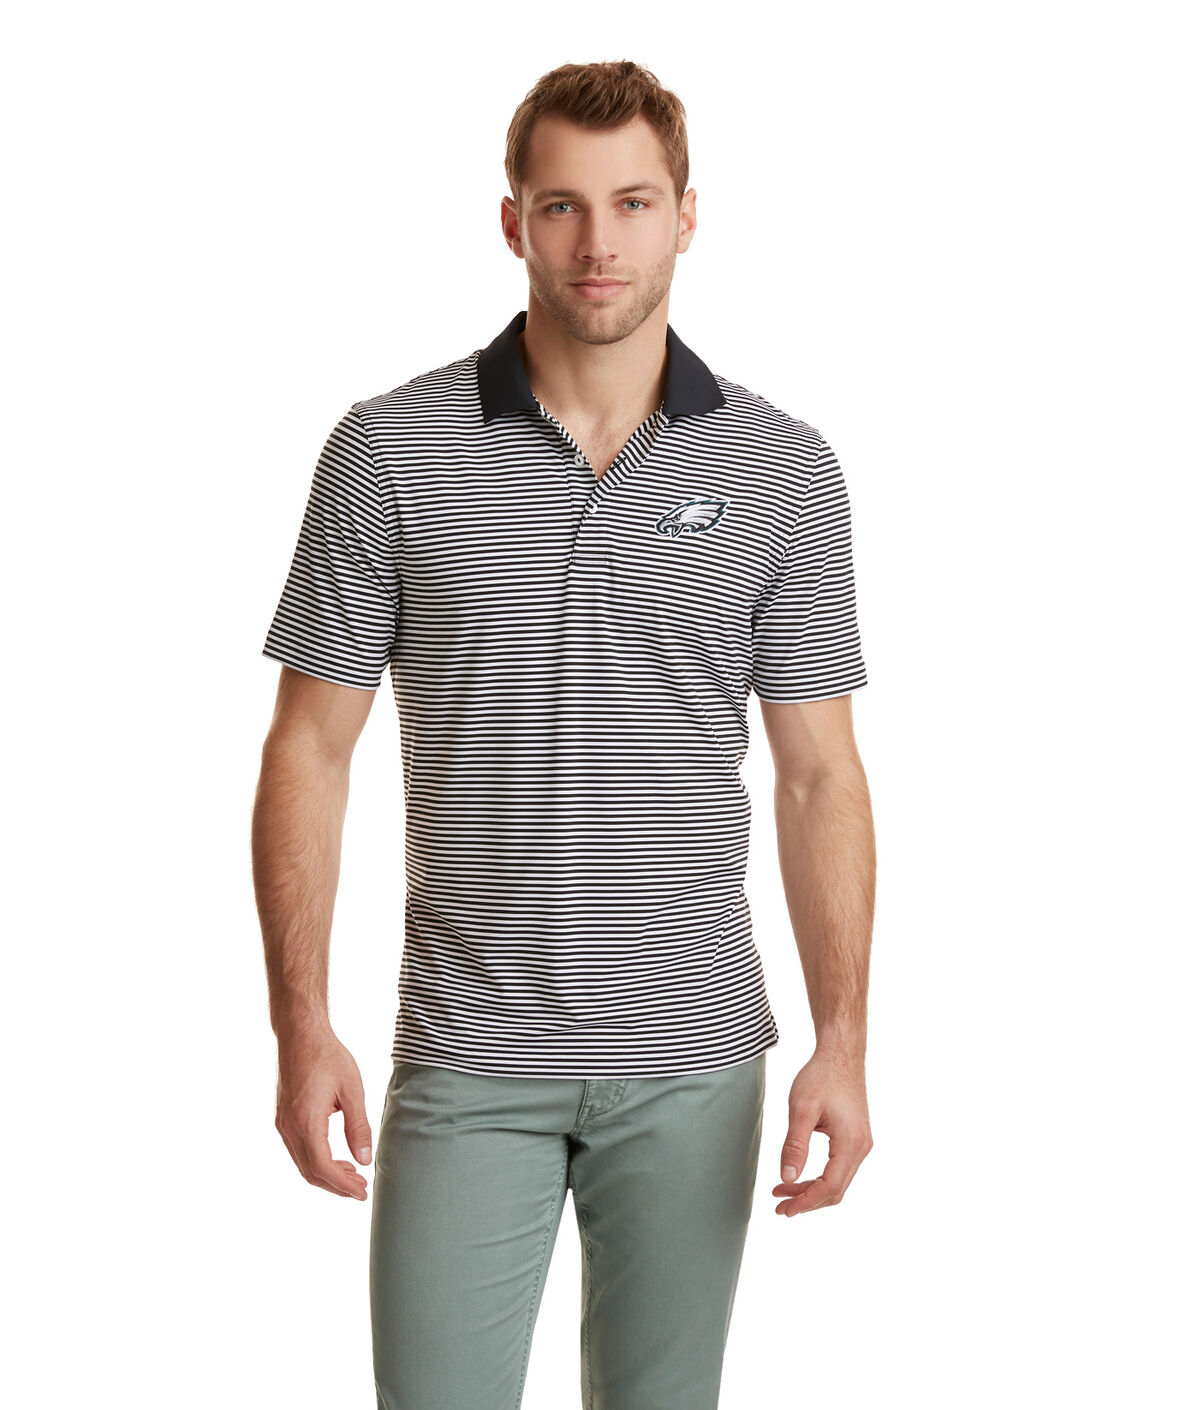 Polo Shirts And Long Sleeve Polos For Men At Vineyard Vines